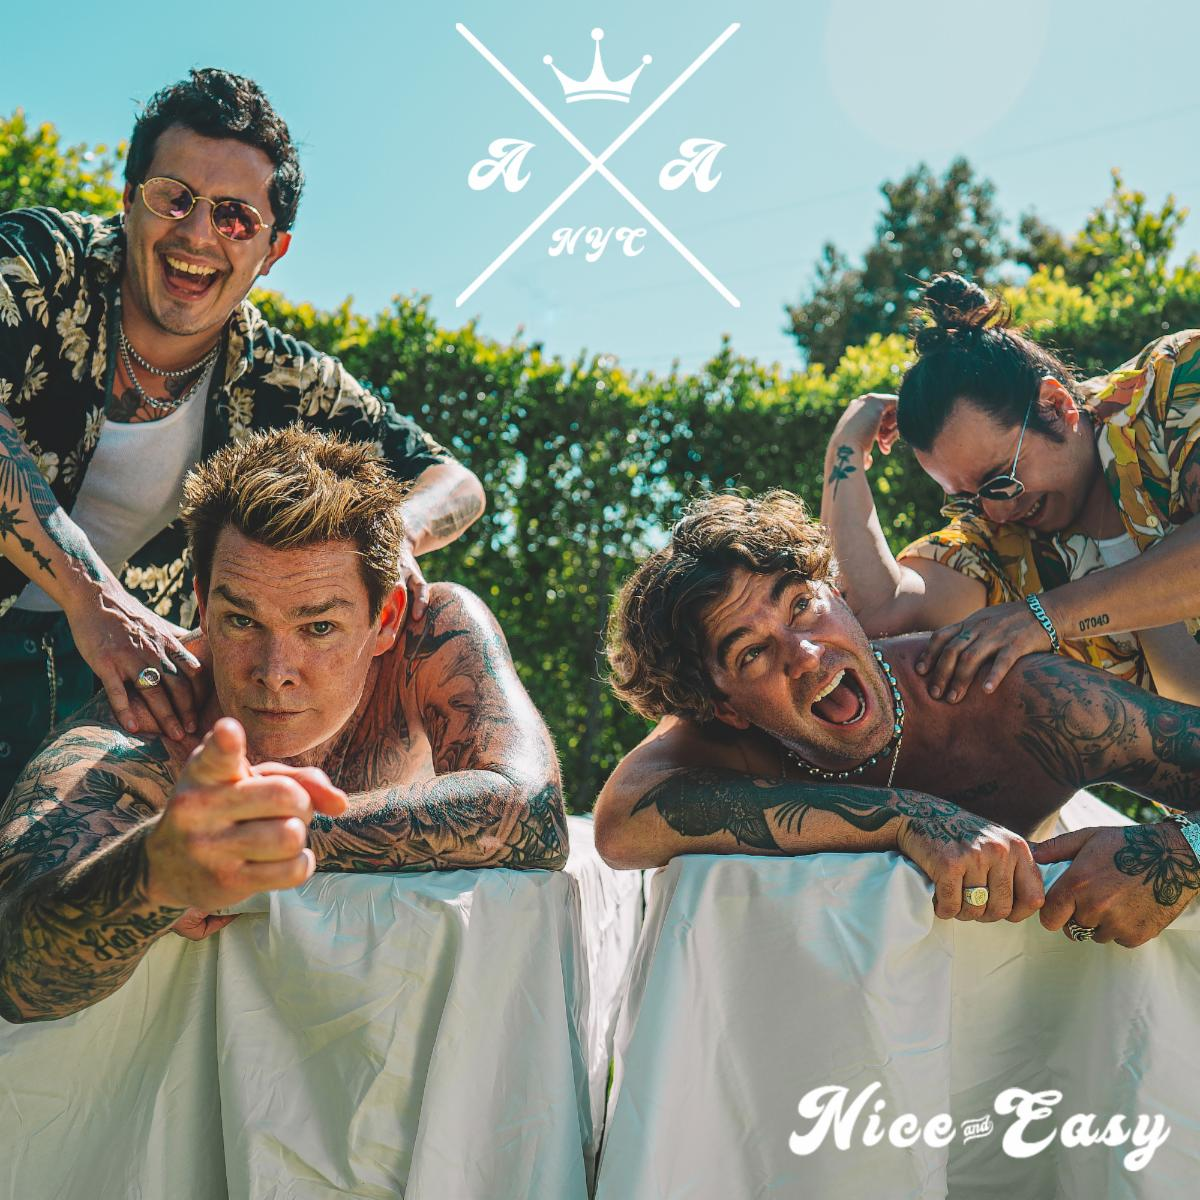 """AMERICAN AUTHORS SHARE BREEZY NEW SINGLE """"NICE AND EASY"""" FEATURING MARK MCGRATH OF SUGAR RAY"""